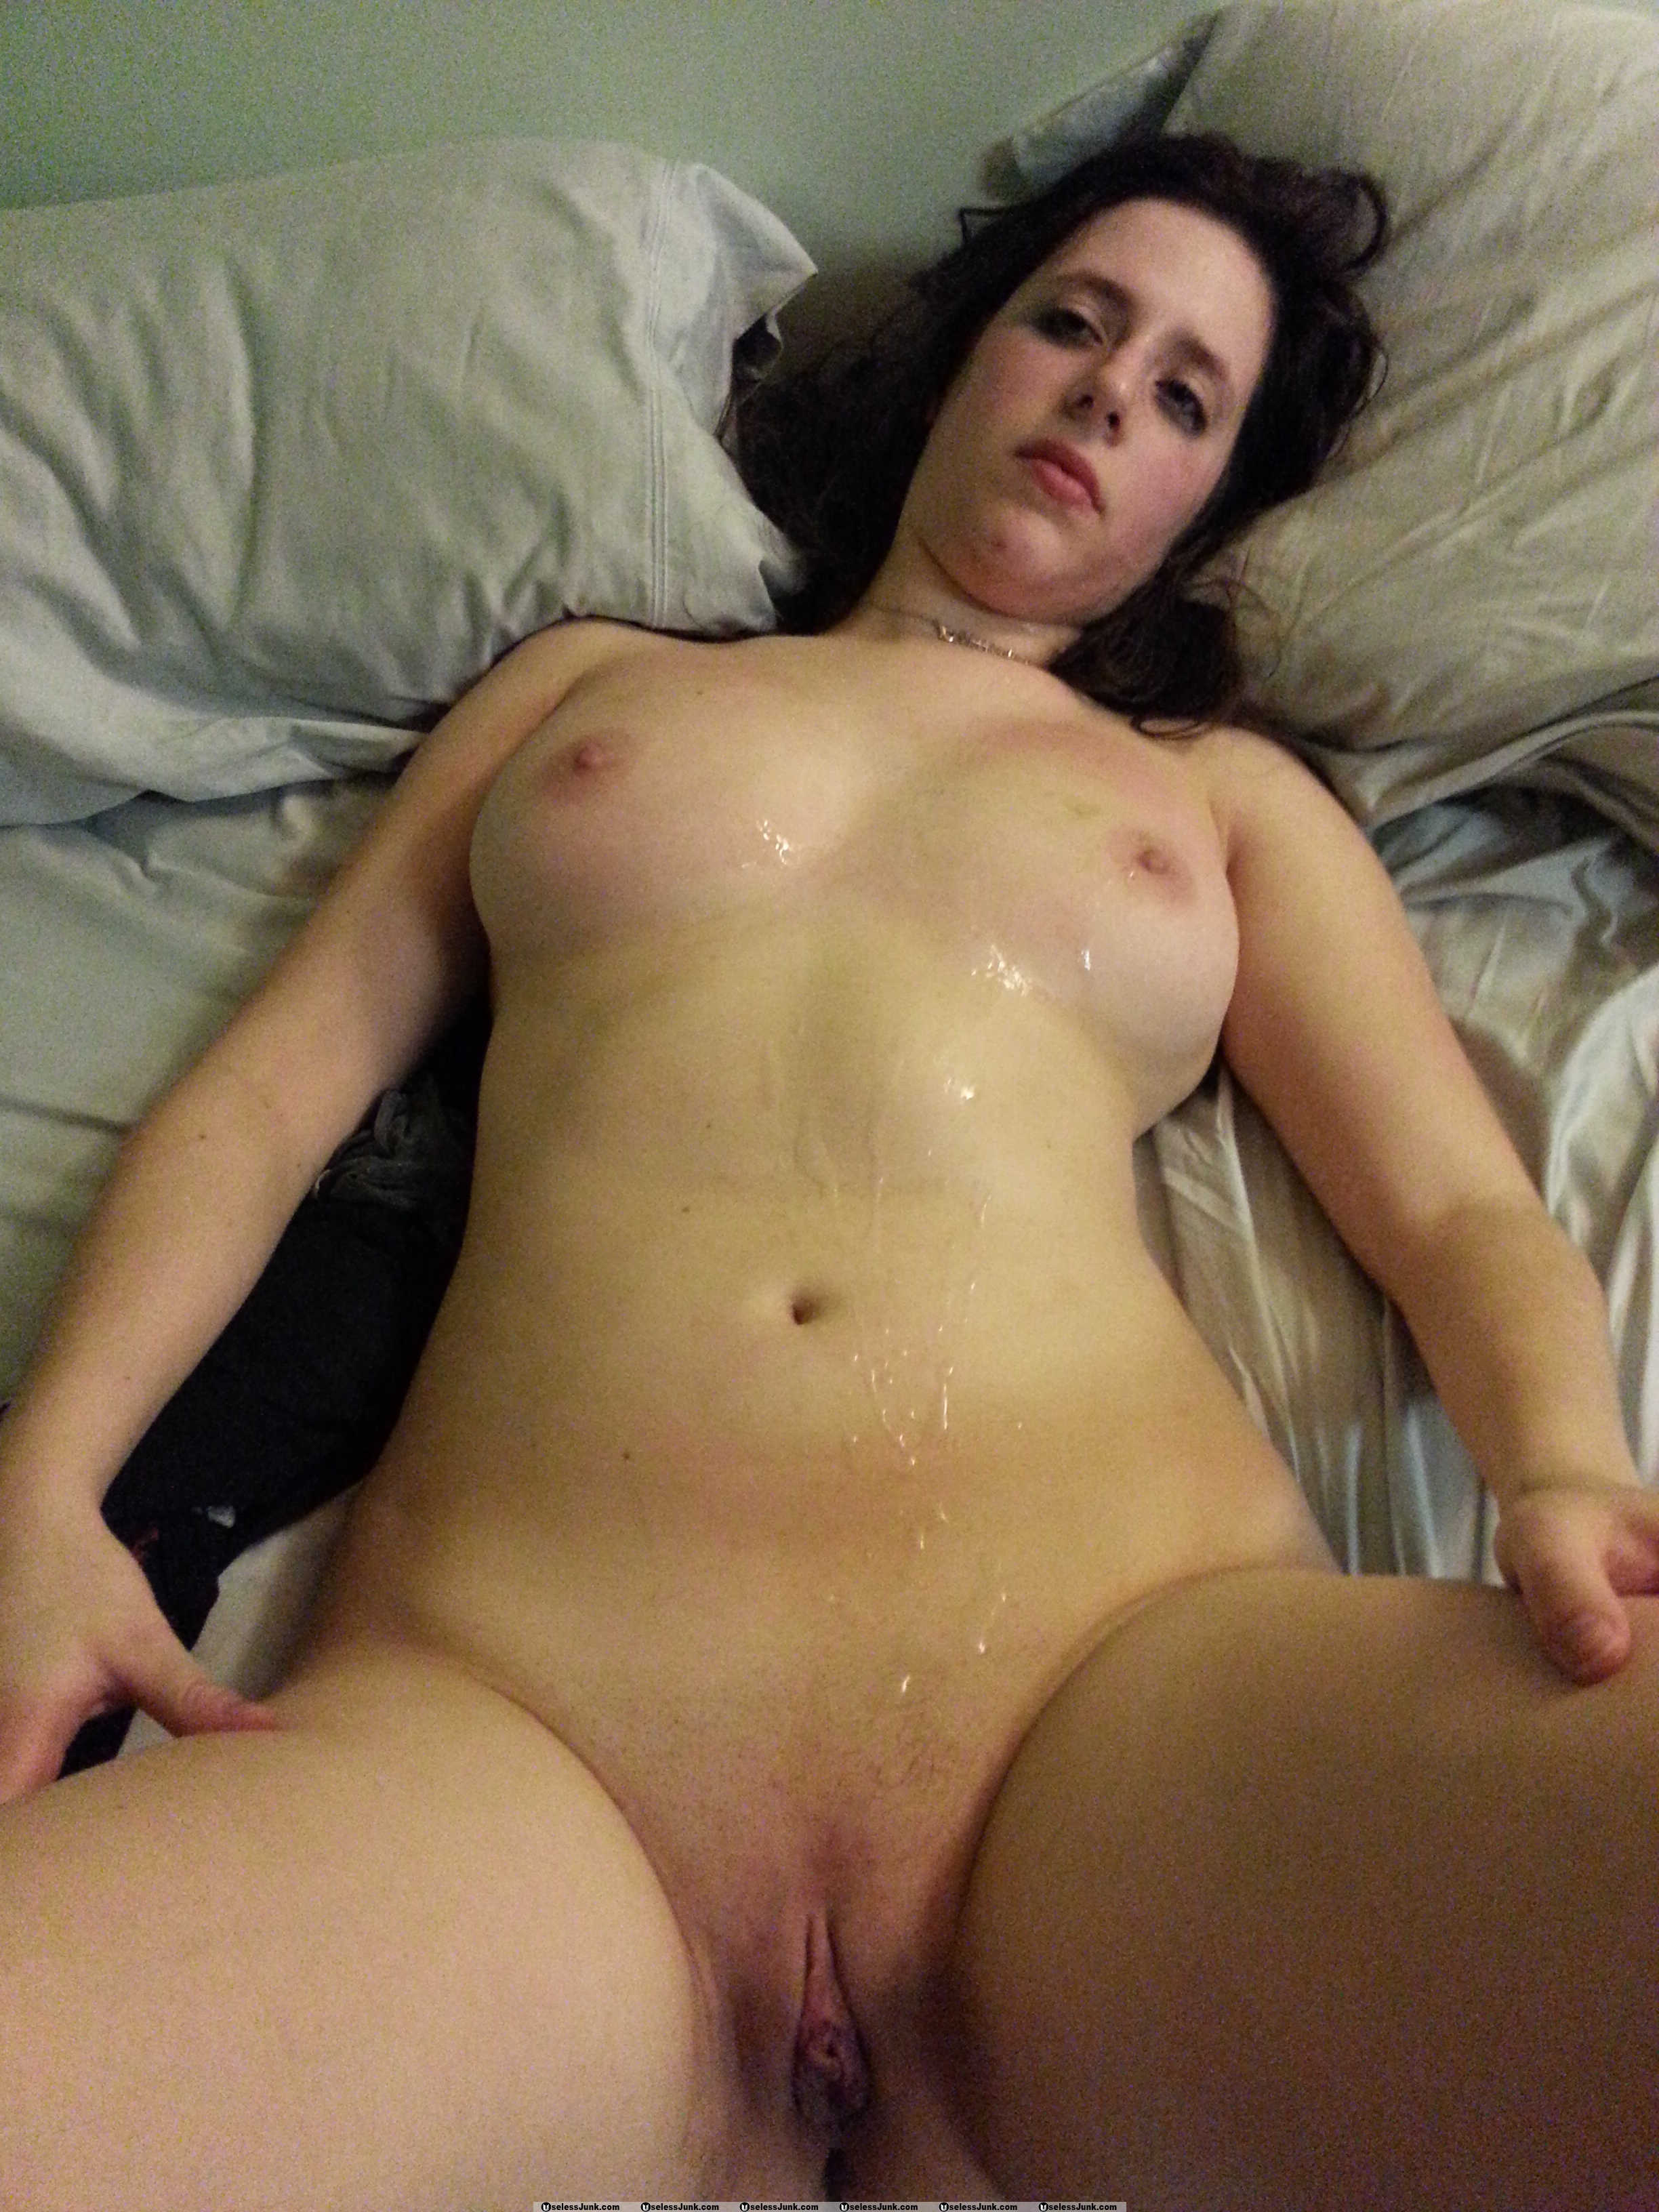 Love her amateur body shots bitch, would fart